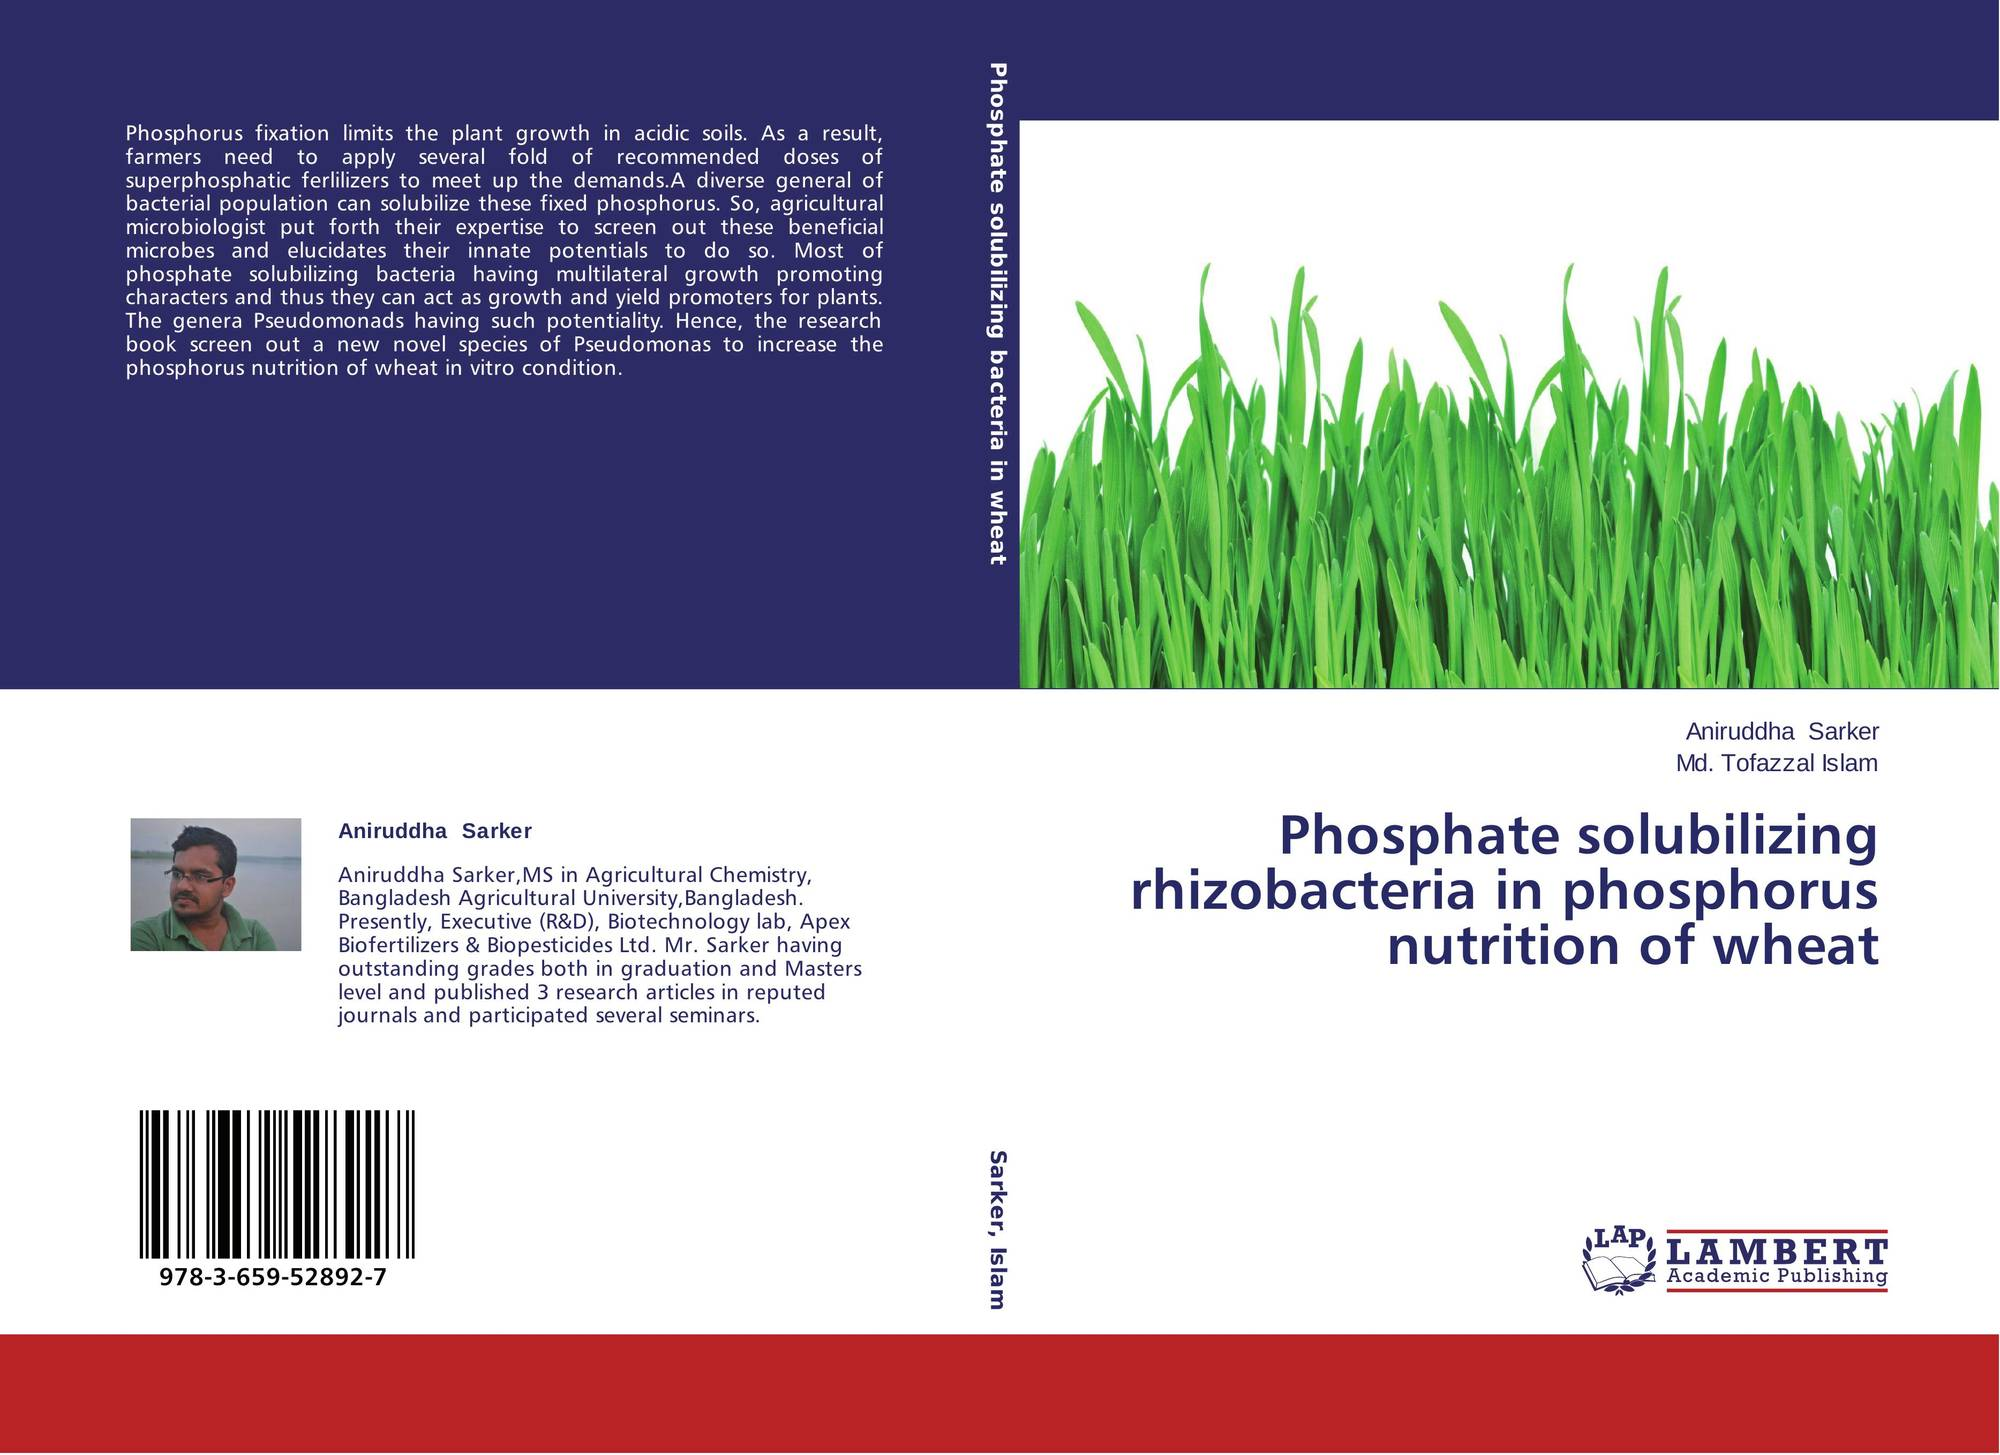 thesis on plant growth promoting rhizobacteria Effects of plant growth promoting rhizobacteria (pgpr) inoculum on indigenous microbial community structure under cropping system suranaree university of technology has approved this thesis submitted in.